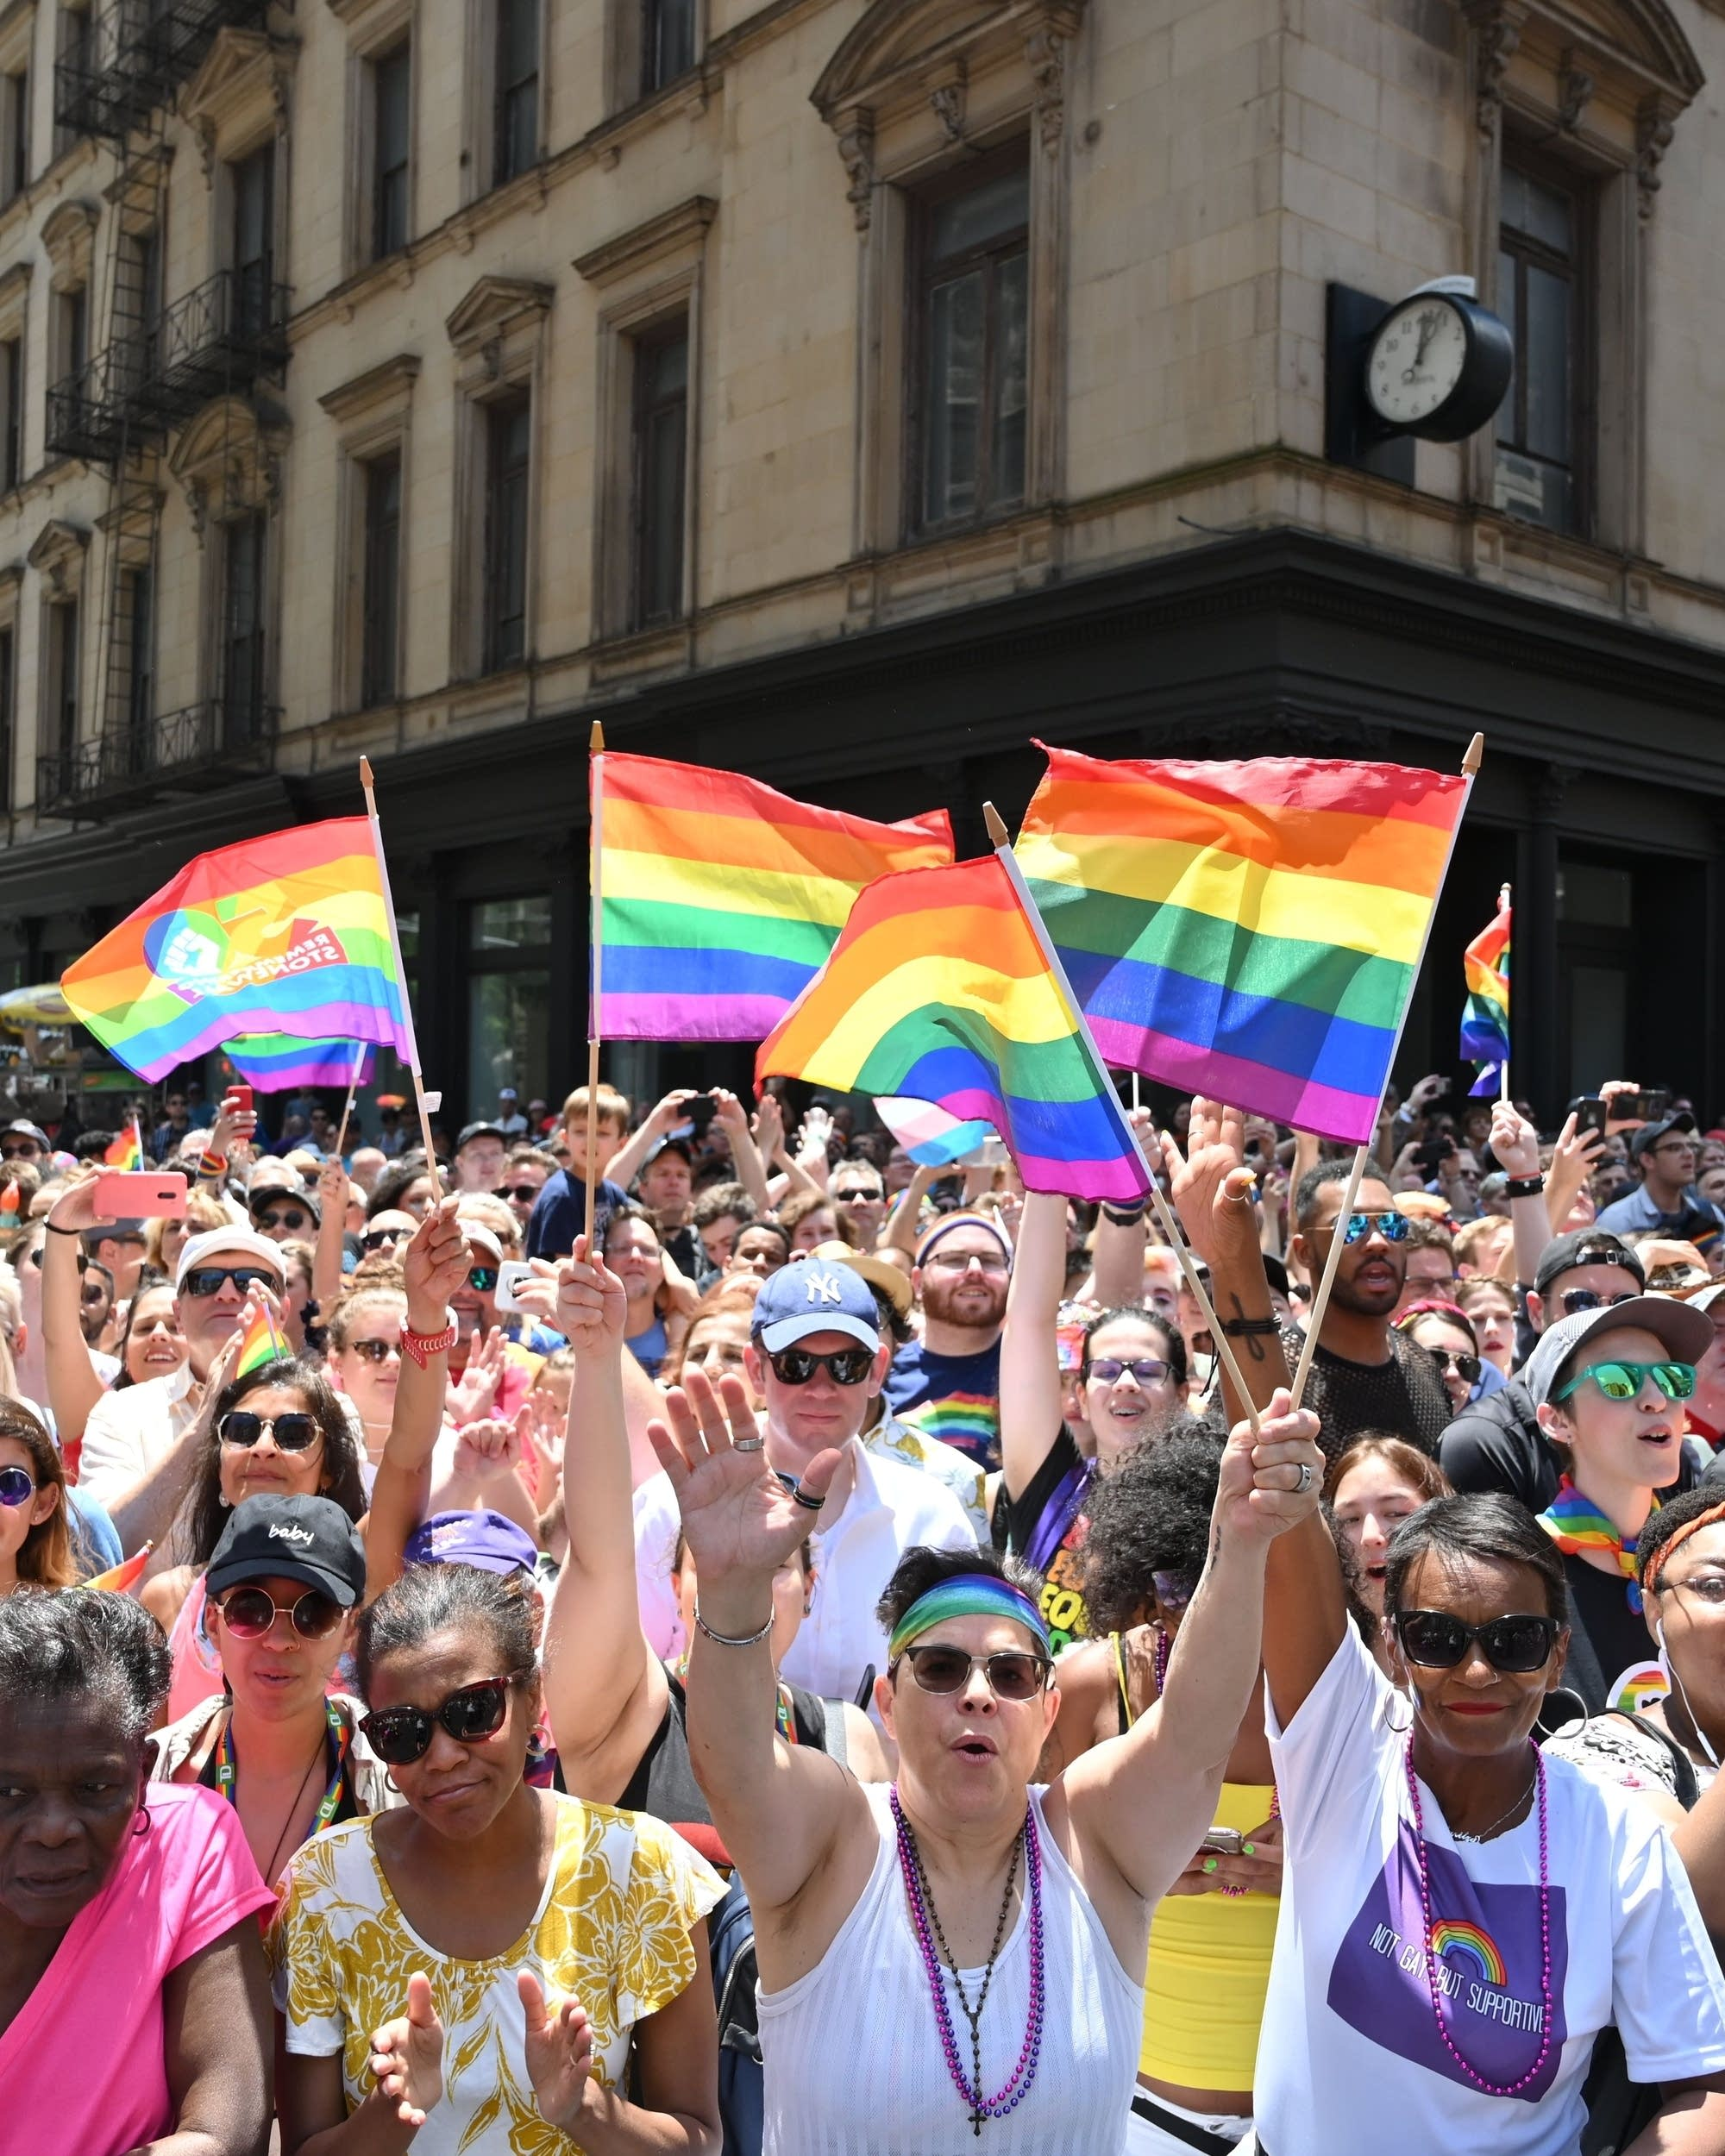 50 Years Of Lgbtq Pride Showcased In Protests Parades Mpr News